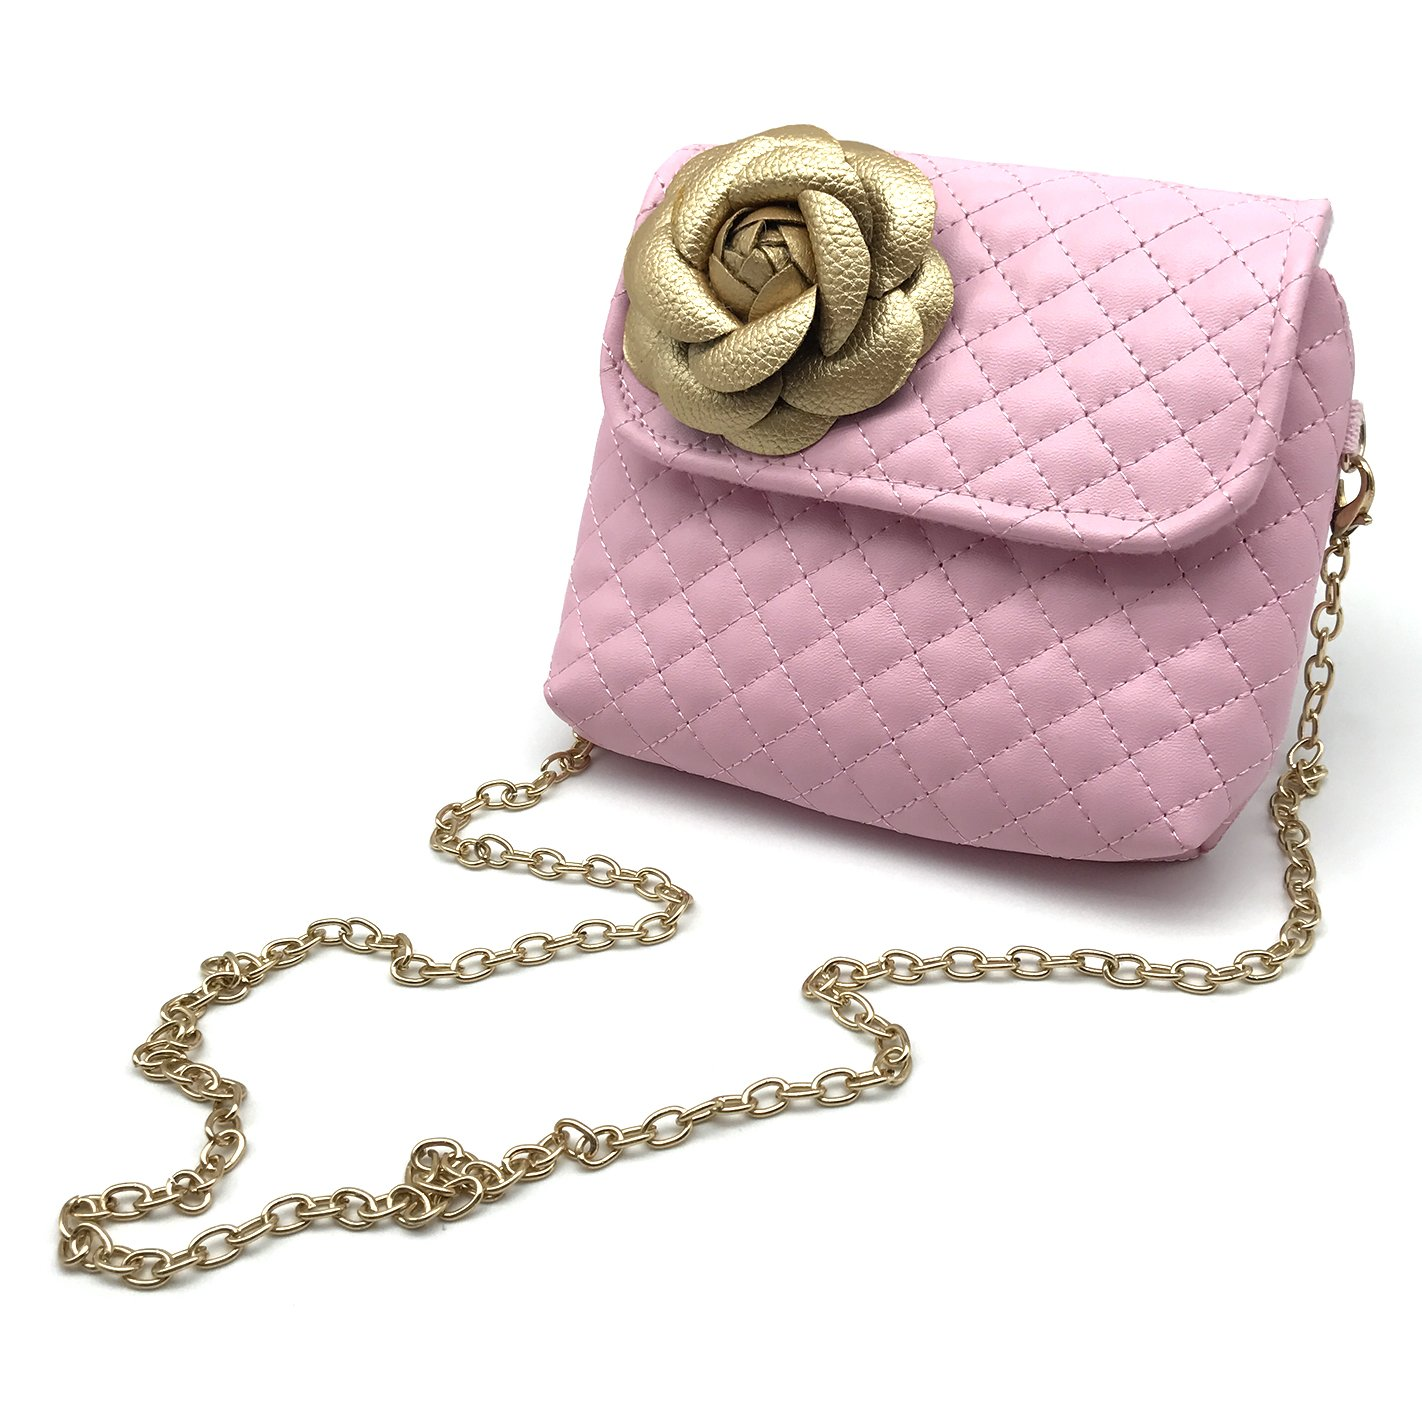 Elesa Miracle Kids Girl Quilted Leather Crossbody Handbag Purse, Chain Bag Little Girl Metal Chain Strap Bag (Pink with Gold Flower)